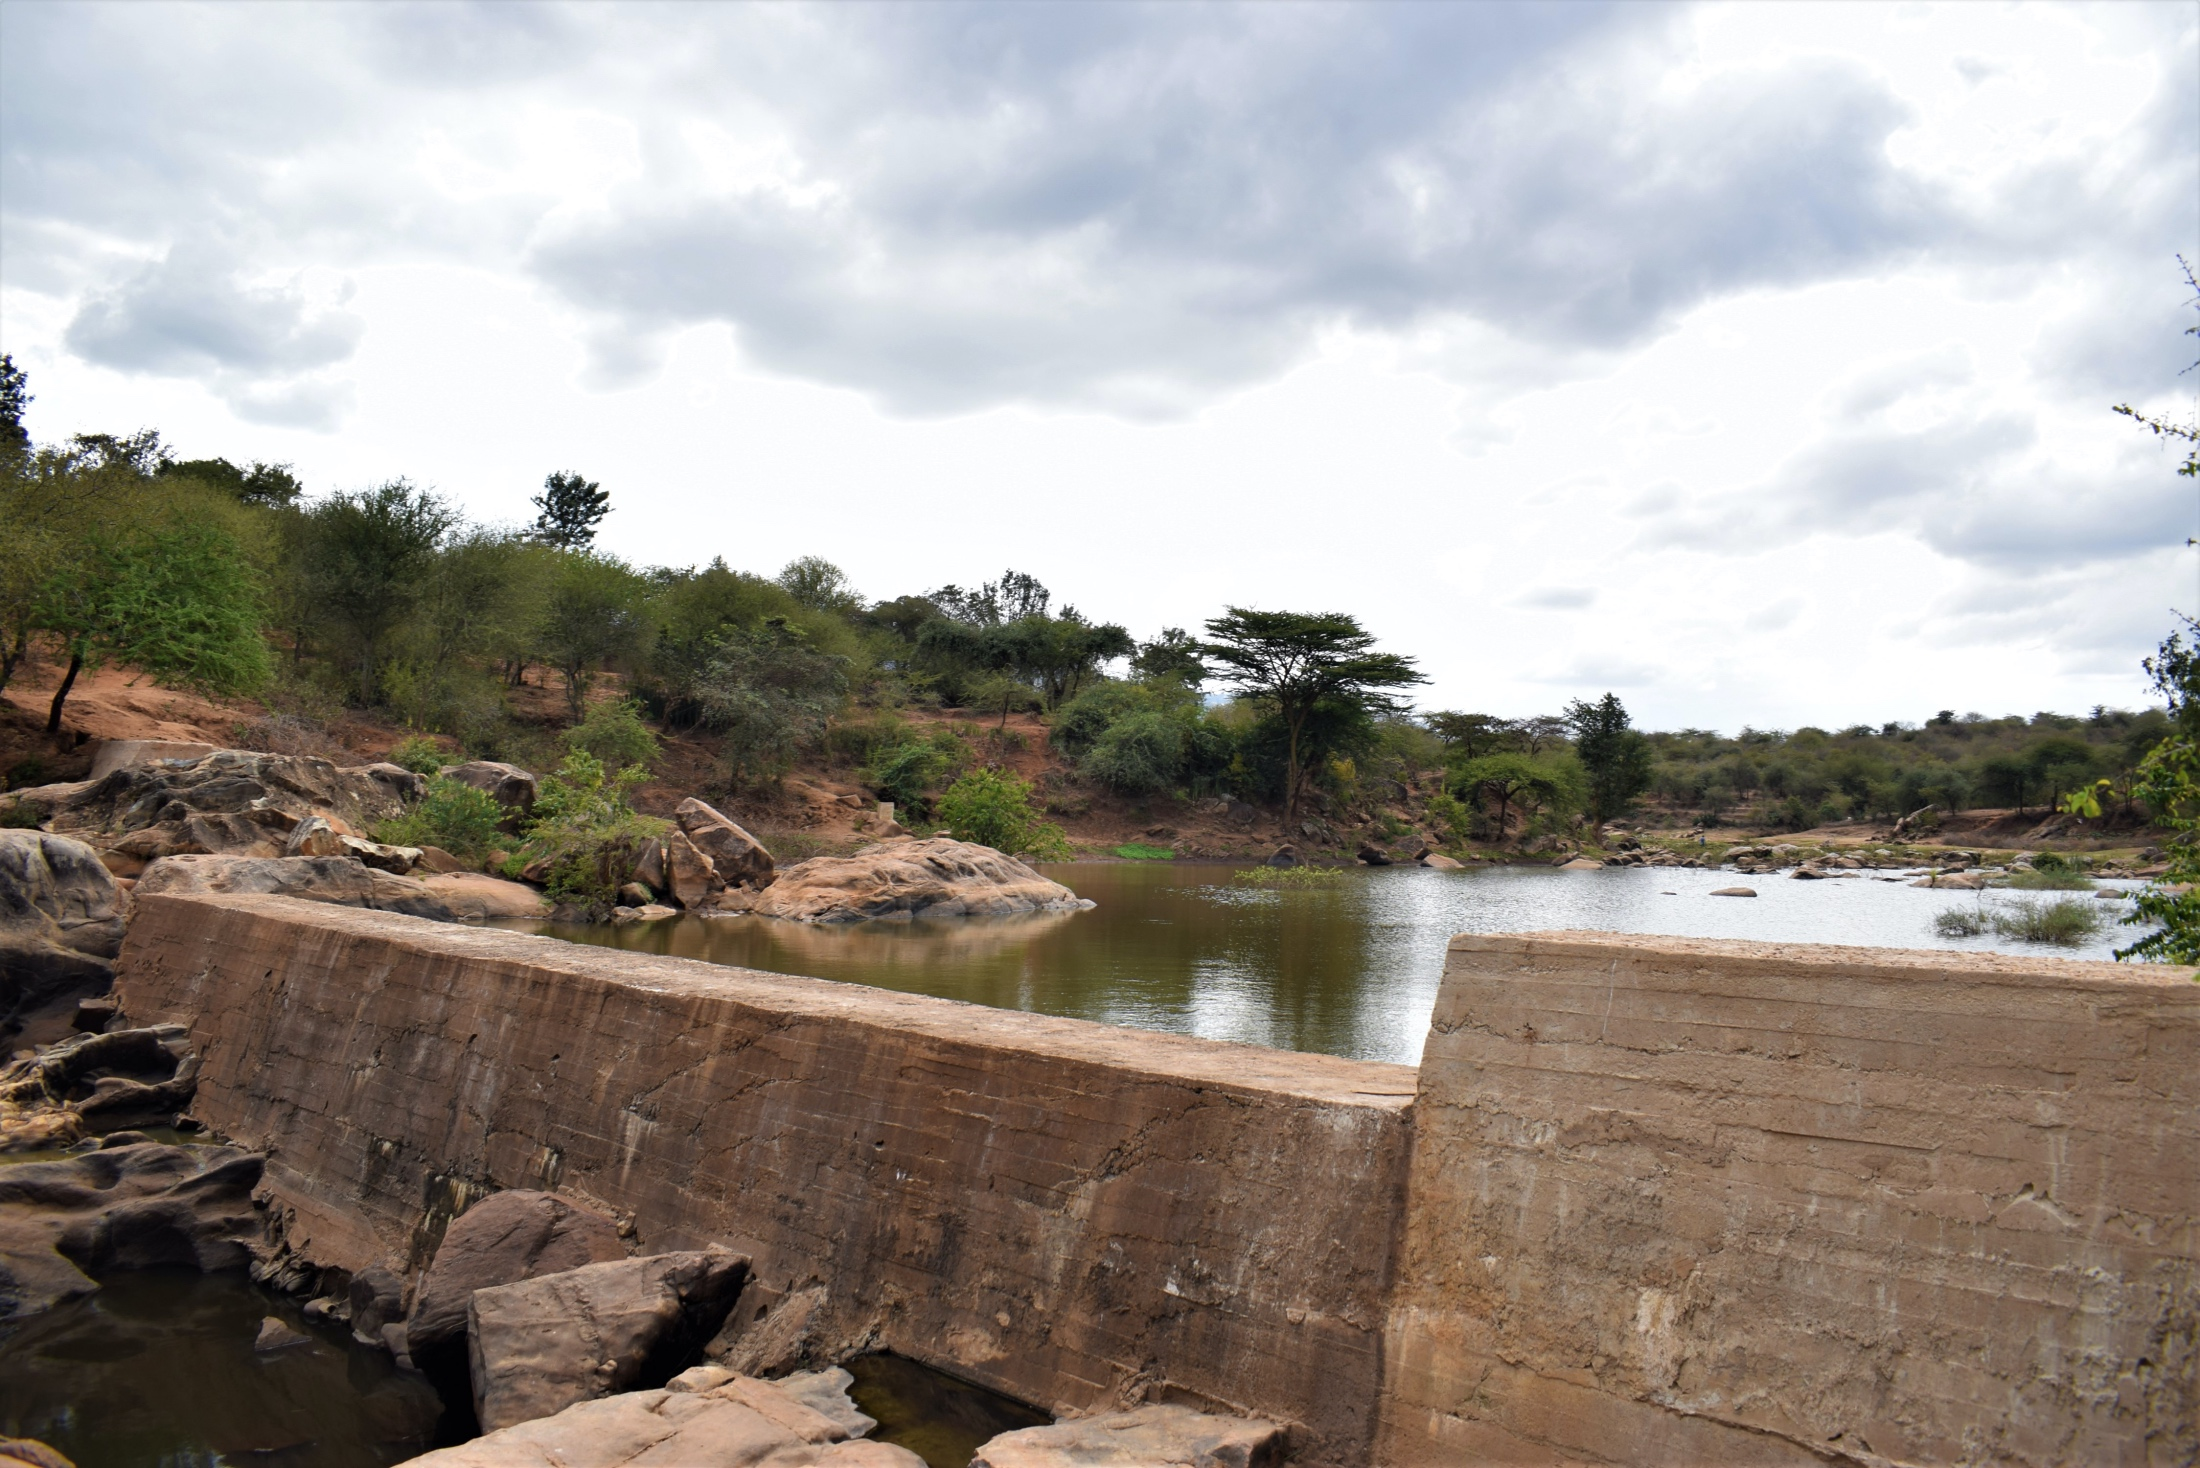 The Water Project : kenya18186-dam-with-water-behind